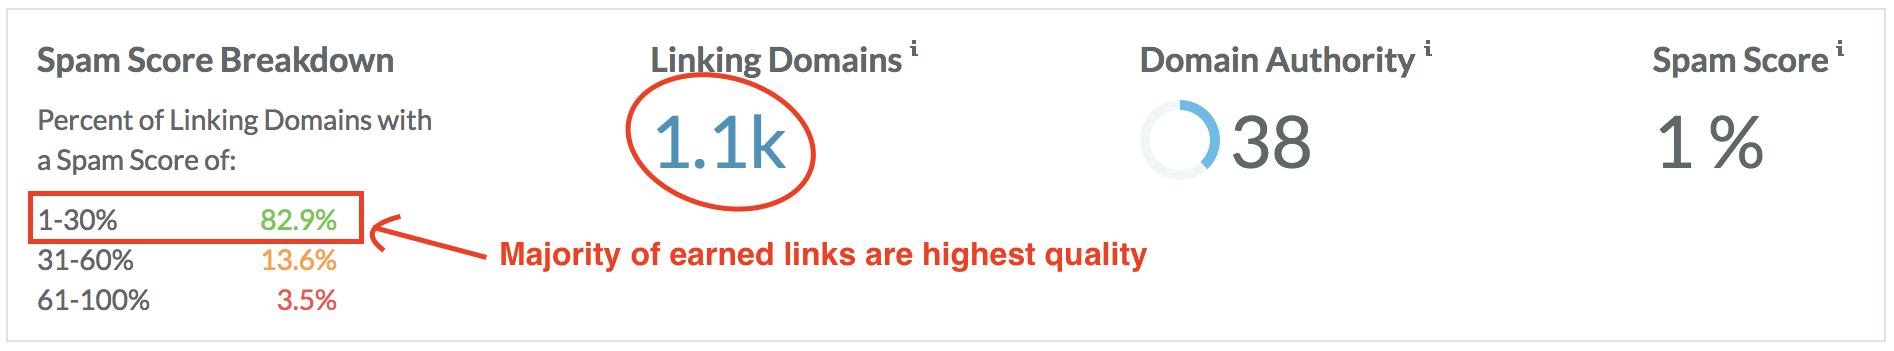 majority of earned links are highest quality